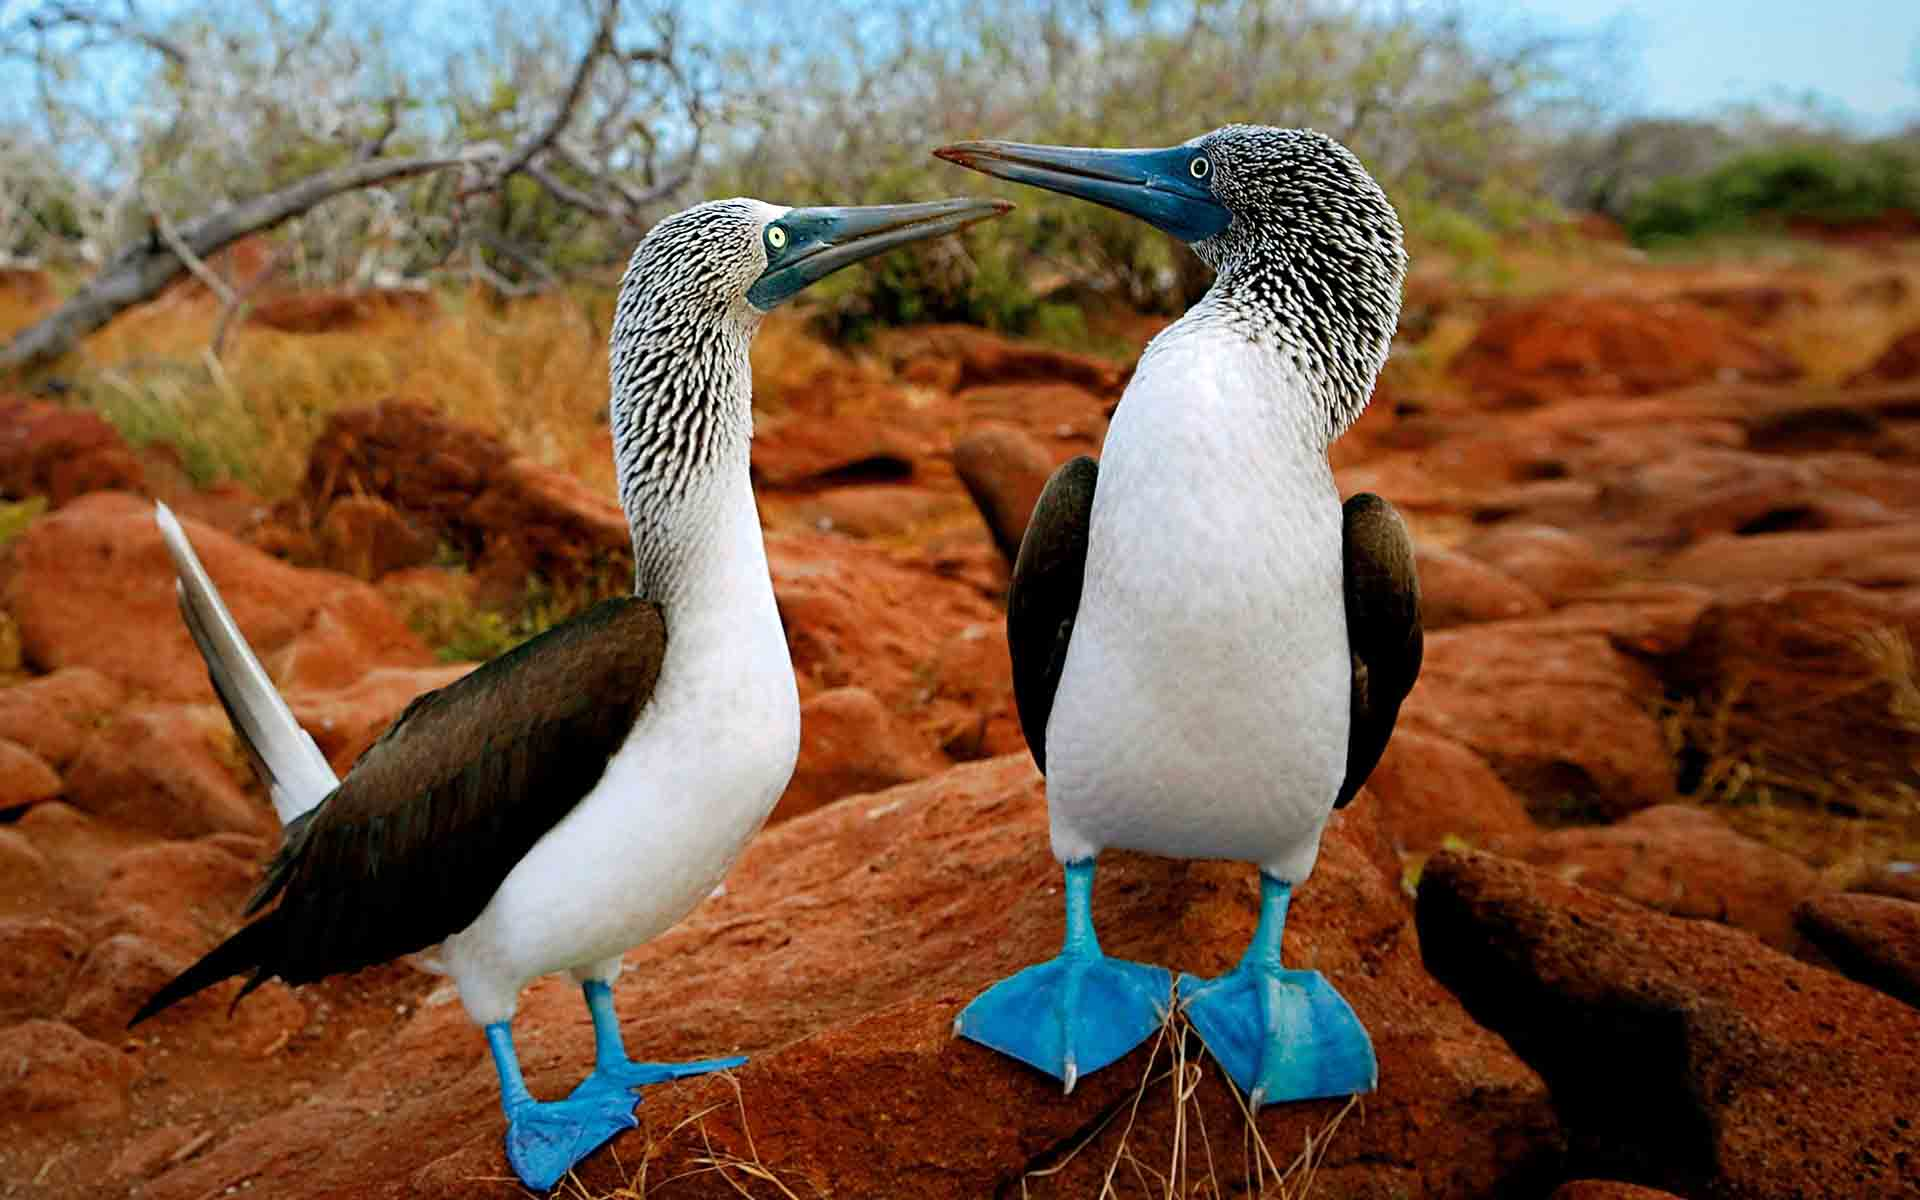 Blue-footed Booby bird on Galapagos Islands